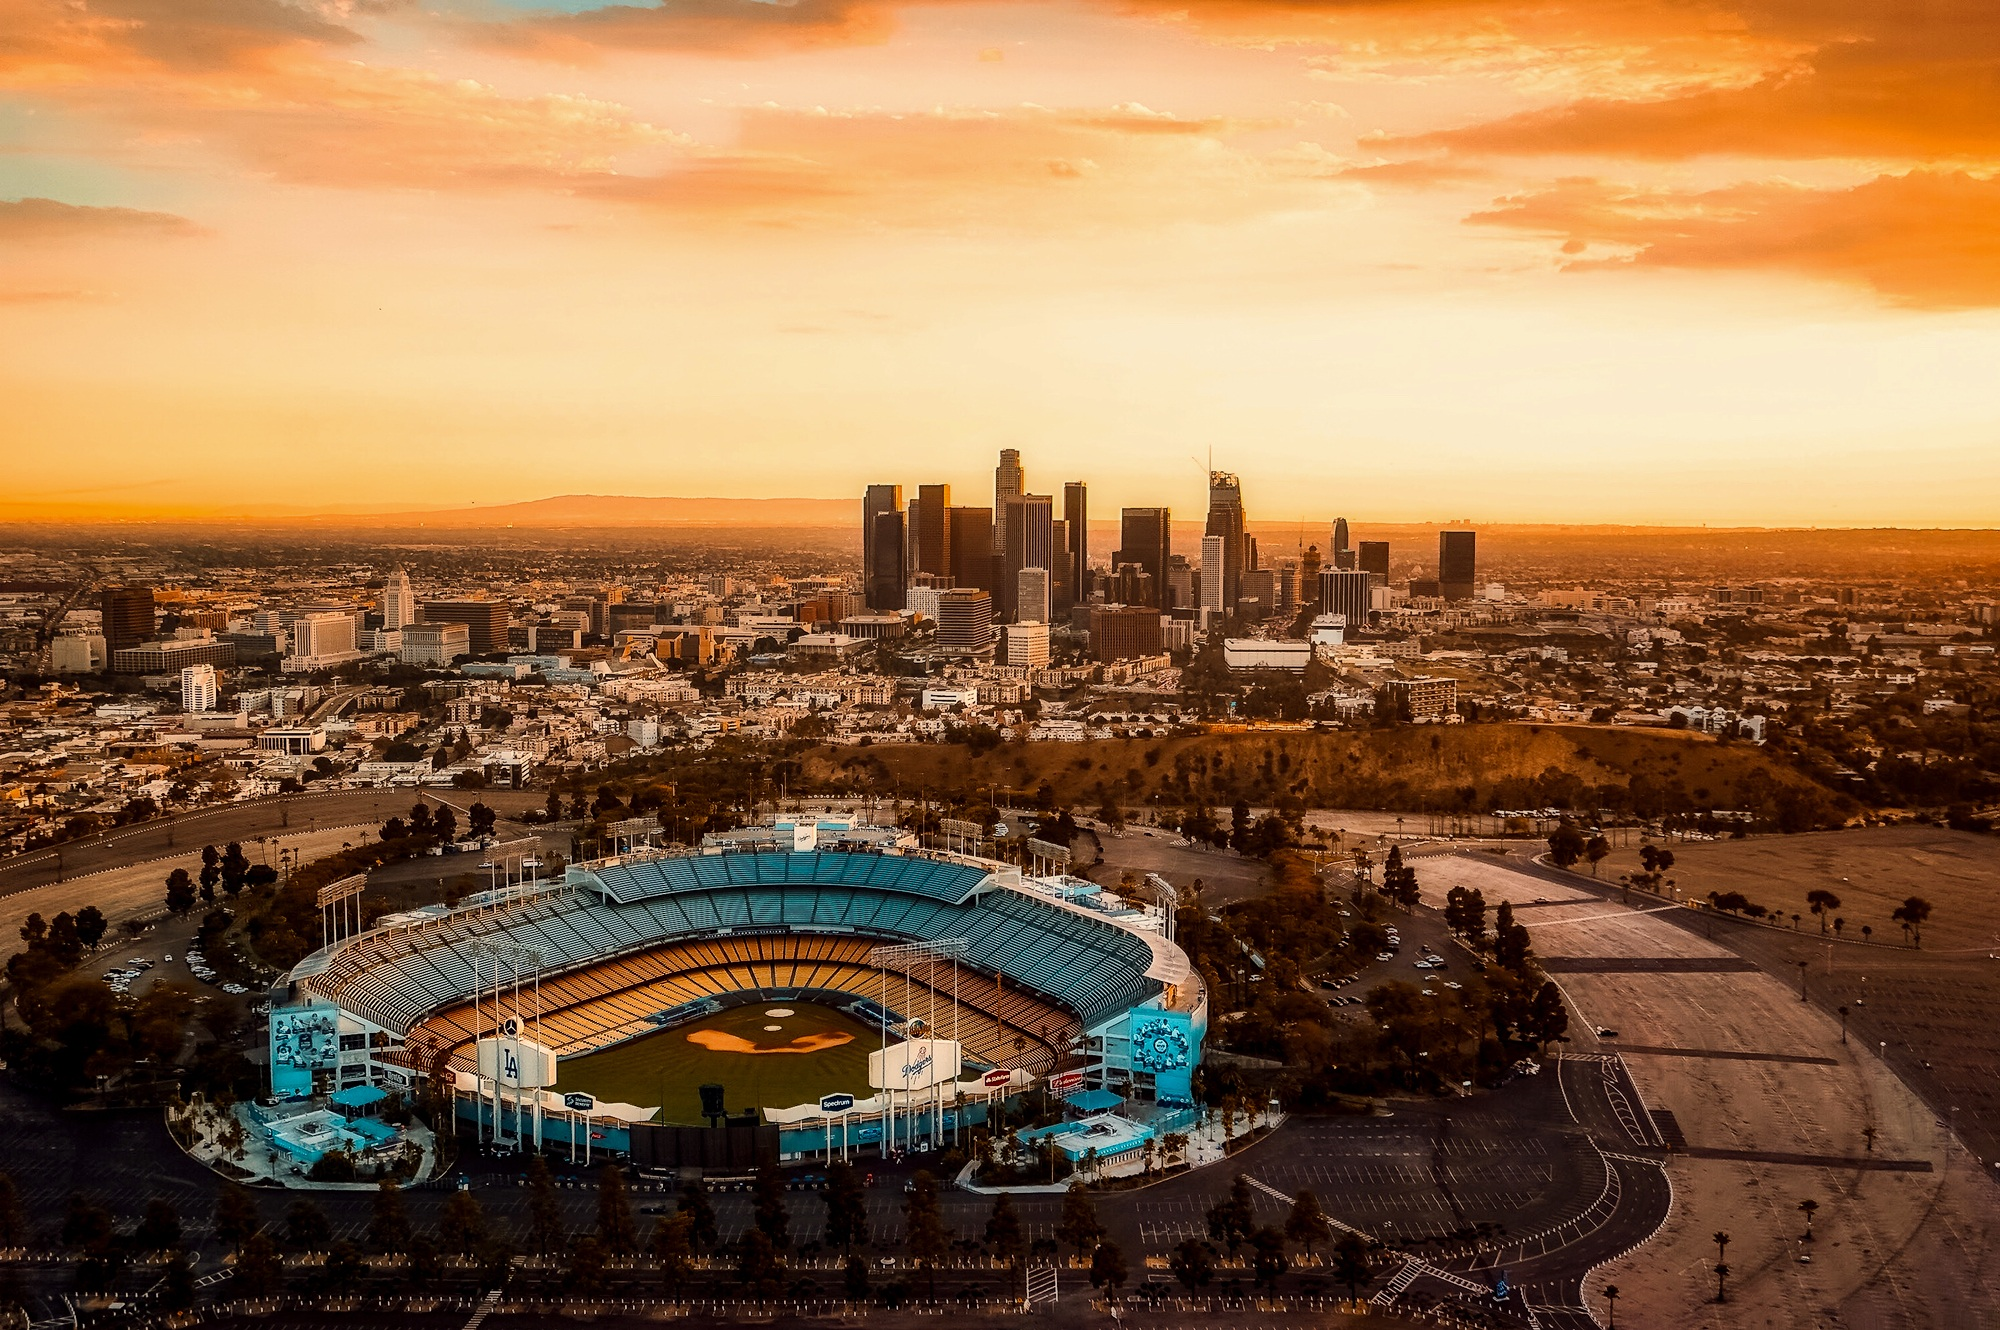 The sun setting over Dodger Stadium, an arena in Los Angeles